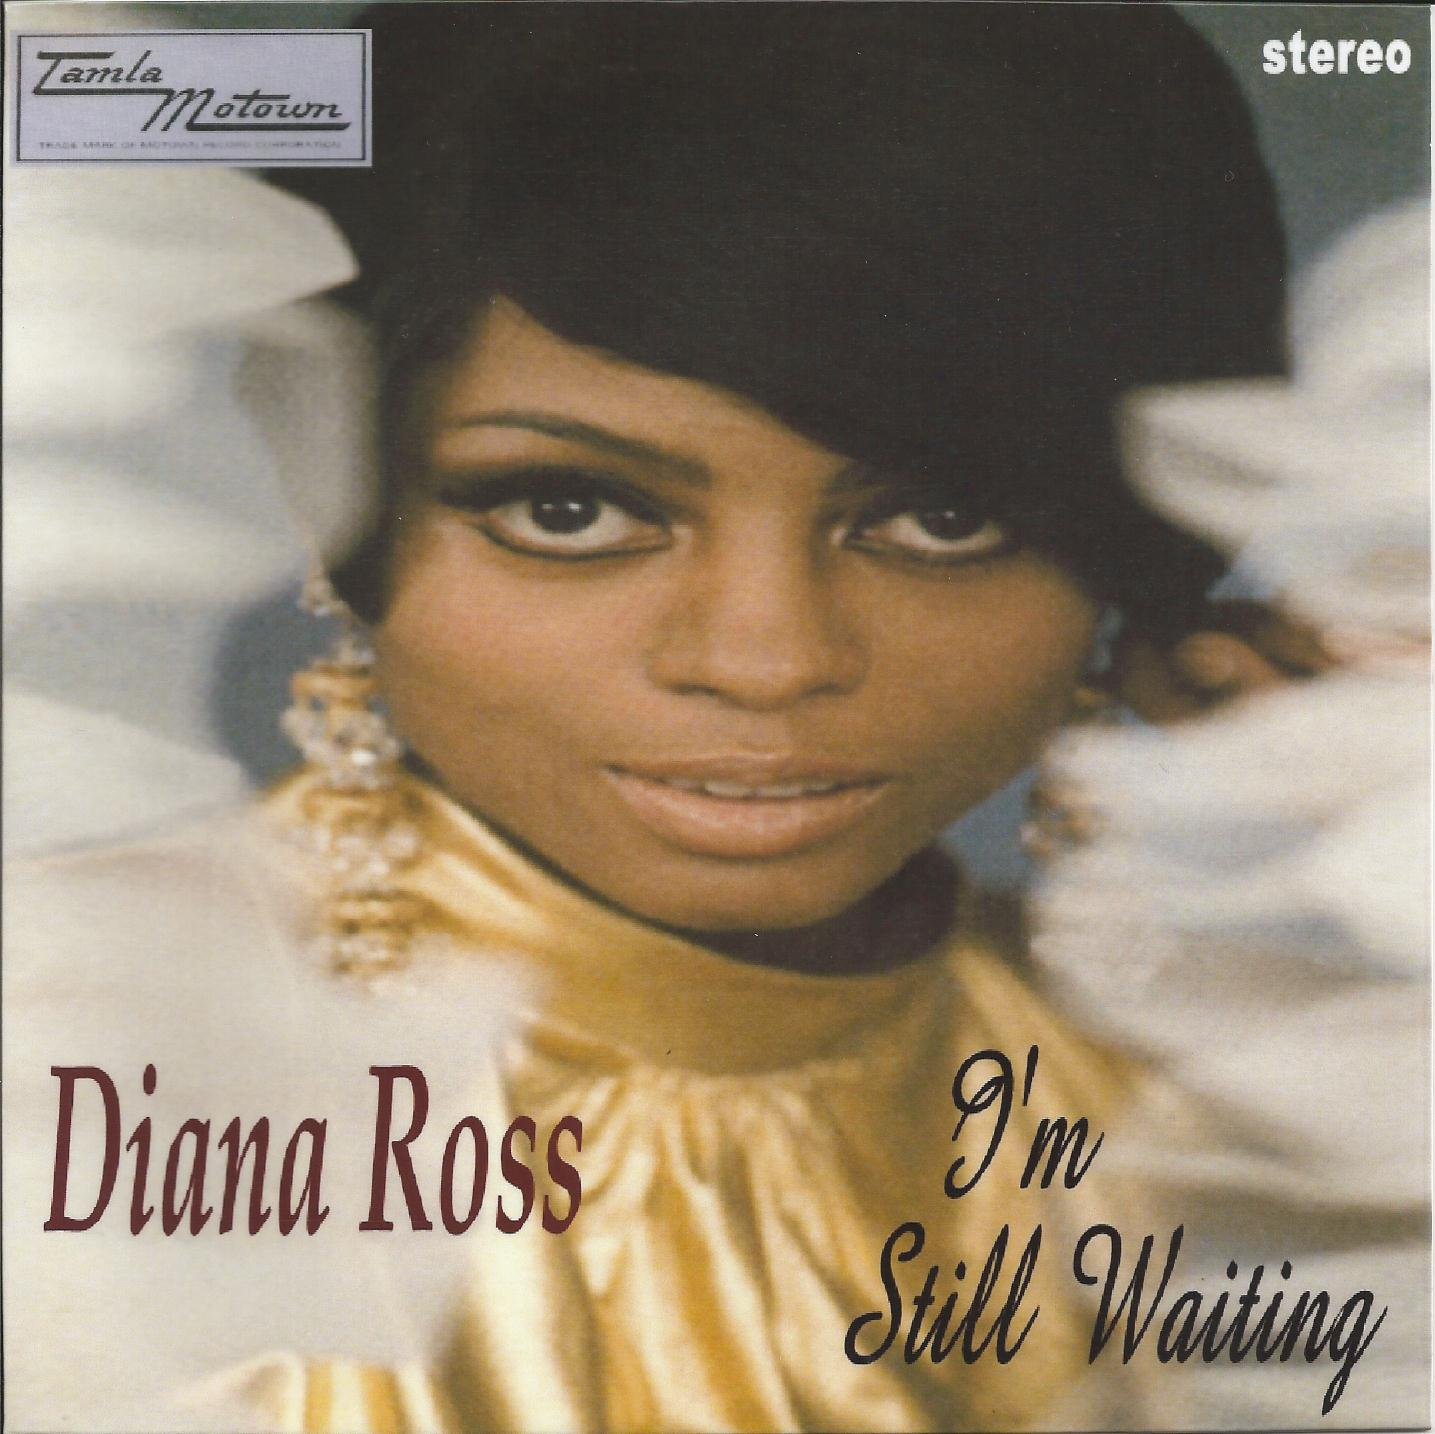 Thom S Motown Record Collection Diana Ross And The